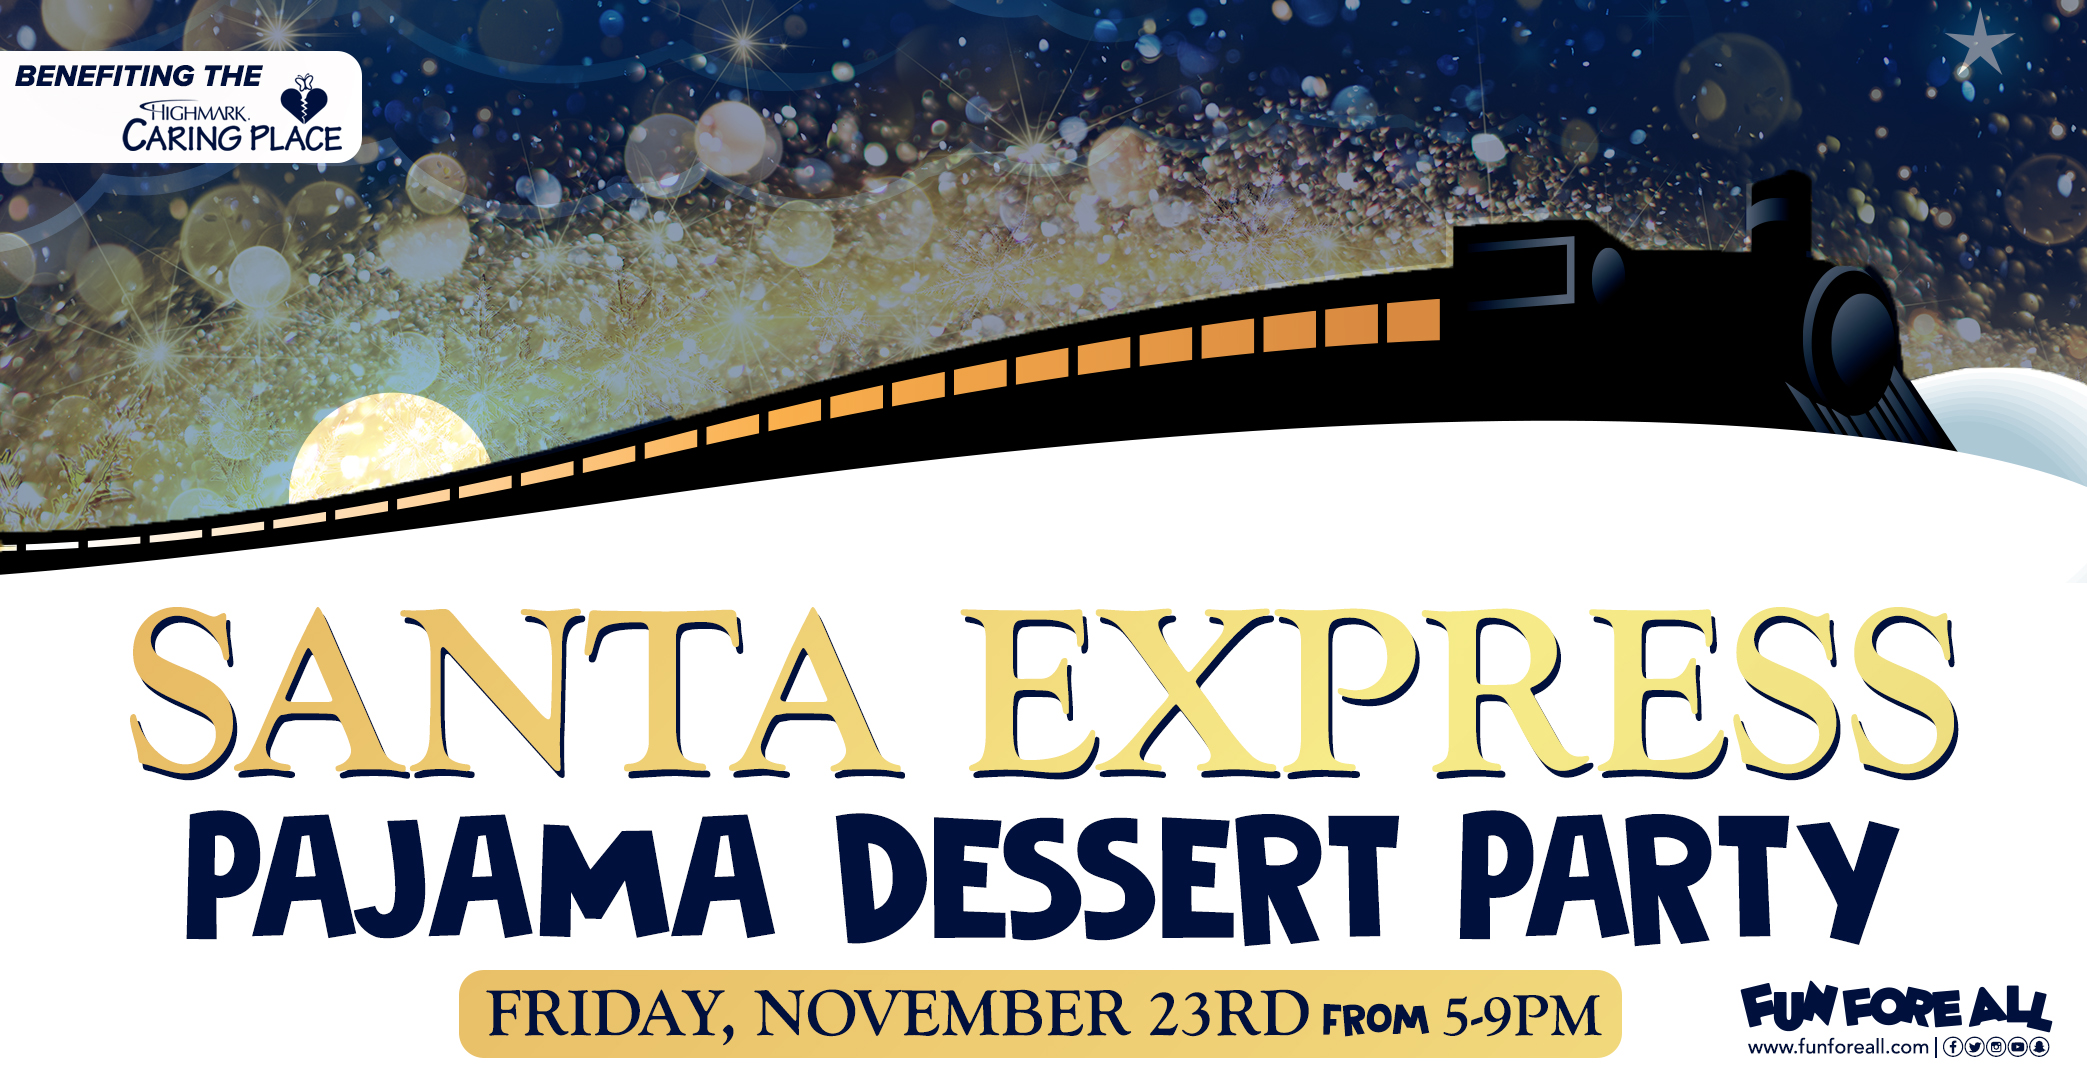 SANTA EXPRESS PAJAMA DESSERT PARTY INVITE BANNER (2018)